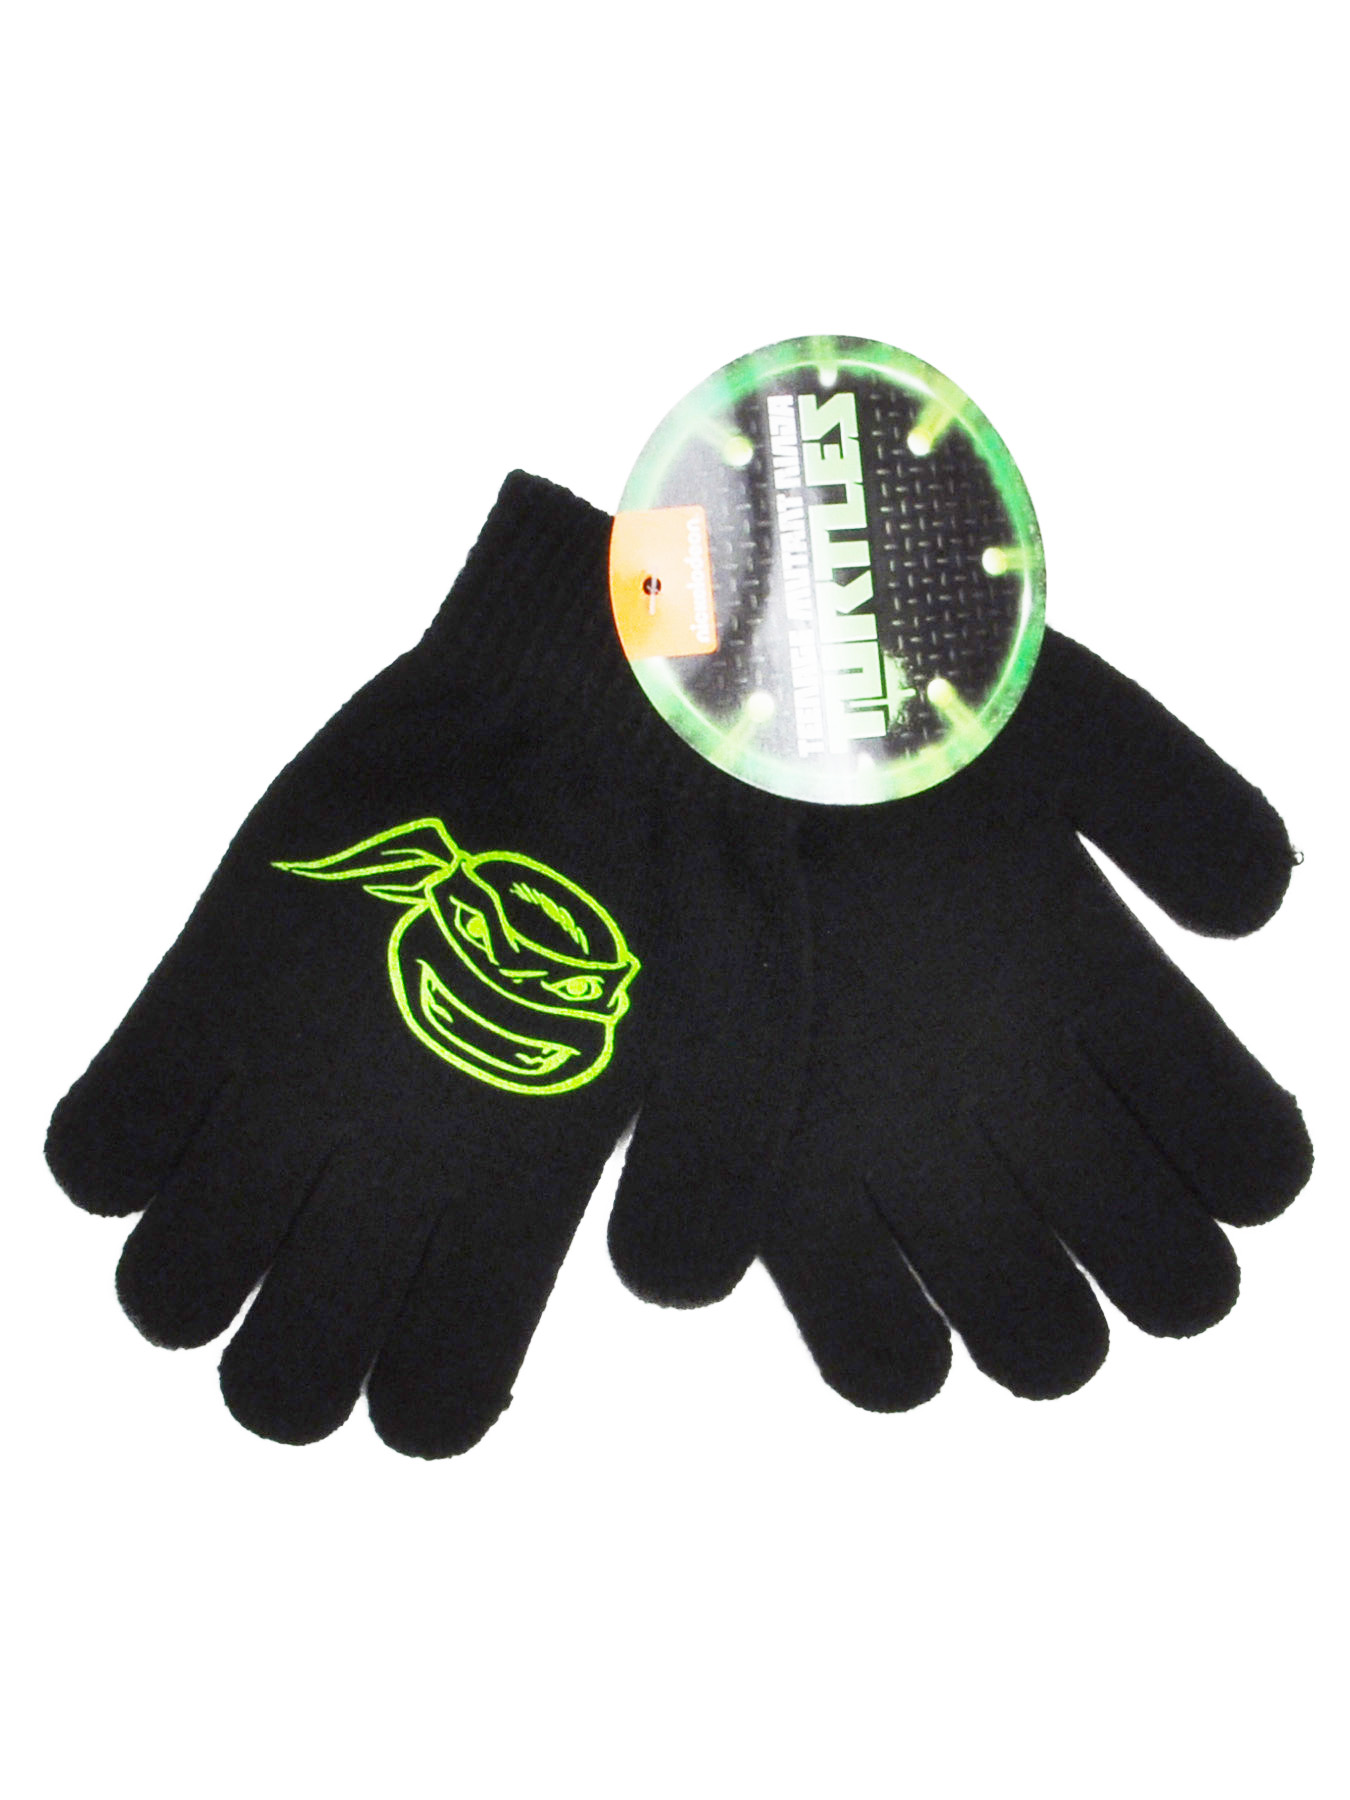 Boys Teenage Mutant Ninja Turtles Gloves Mittens Black 1-PAIR